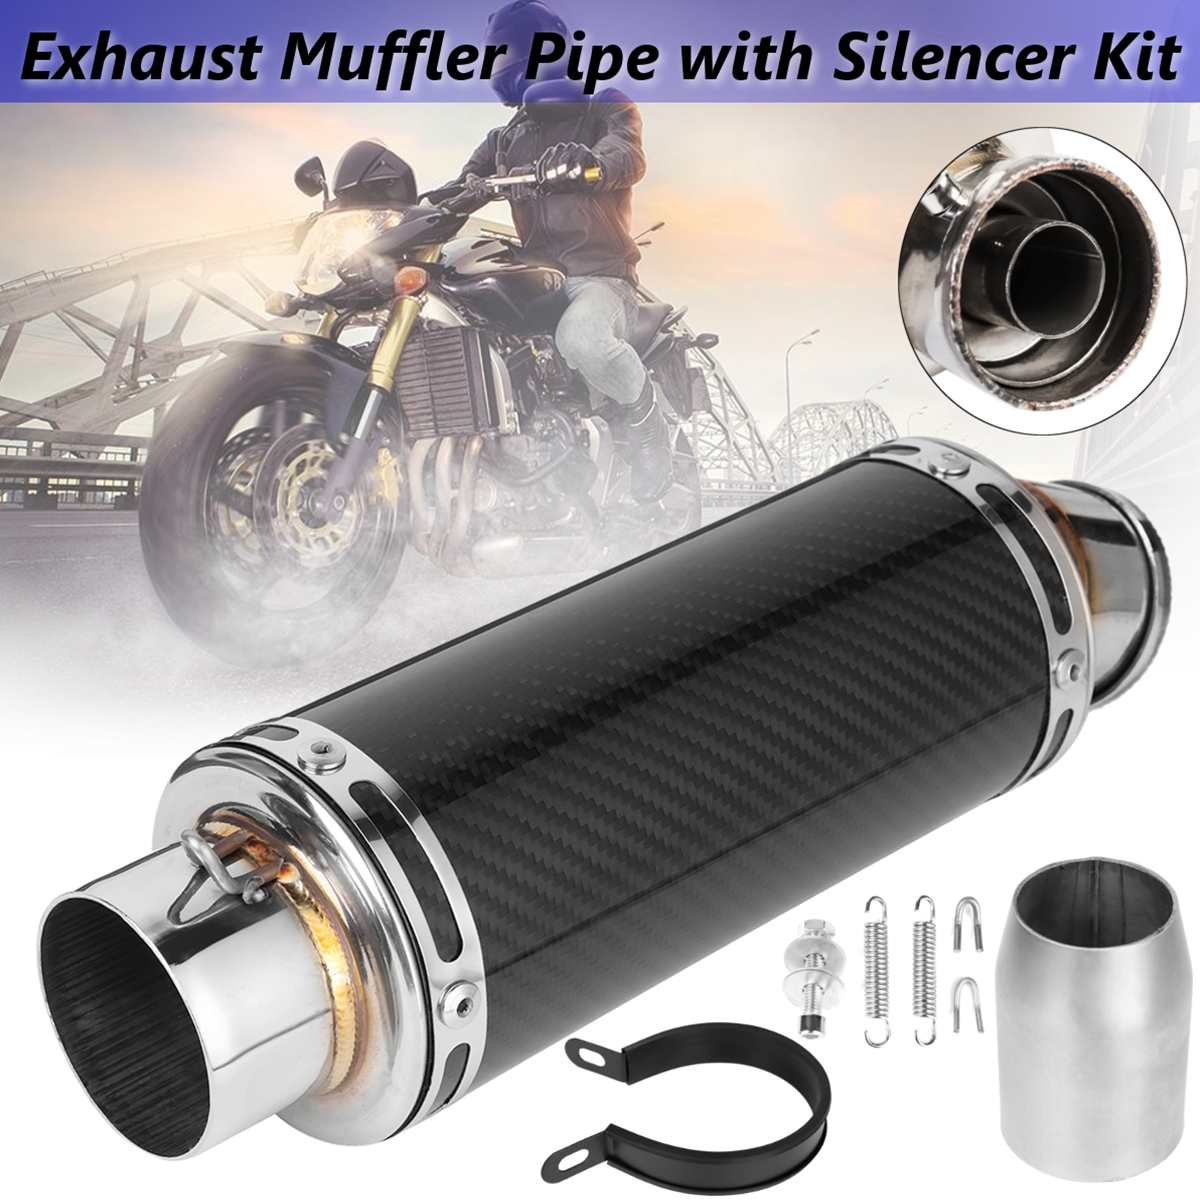 38-51mm Carbon fiber Exhaust Muffler Pipe Slip On Motorcycle Exhaust system